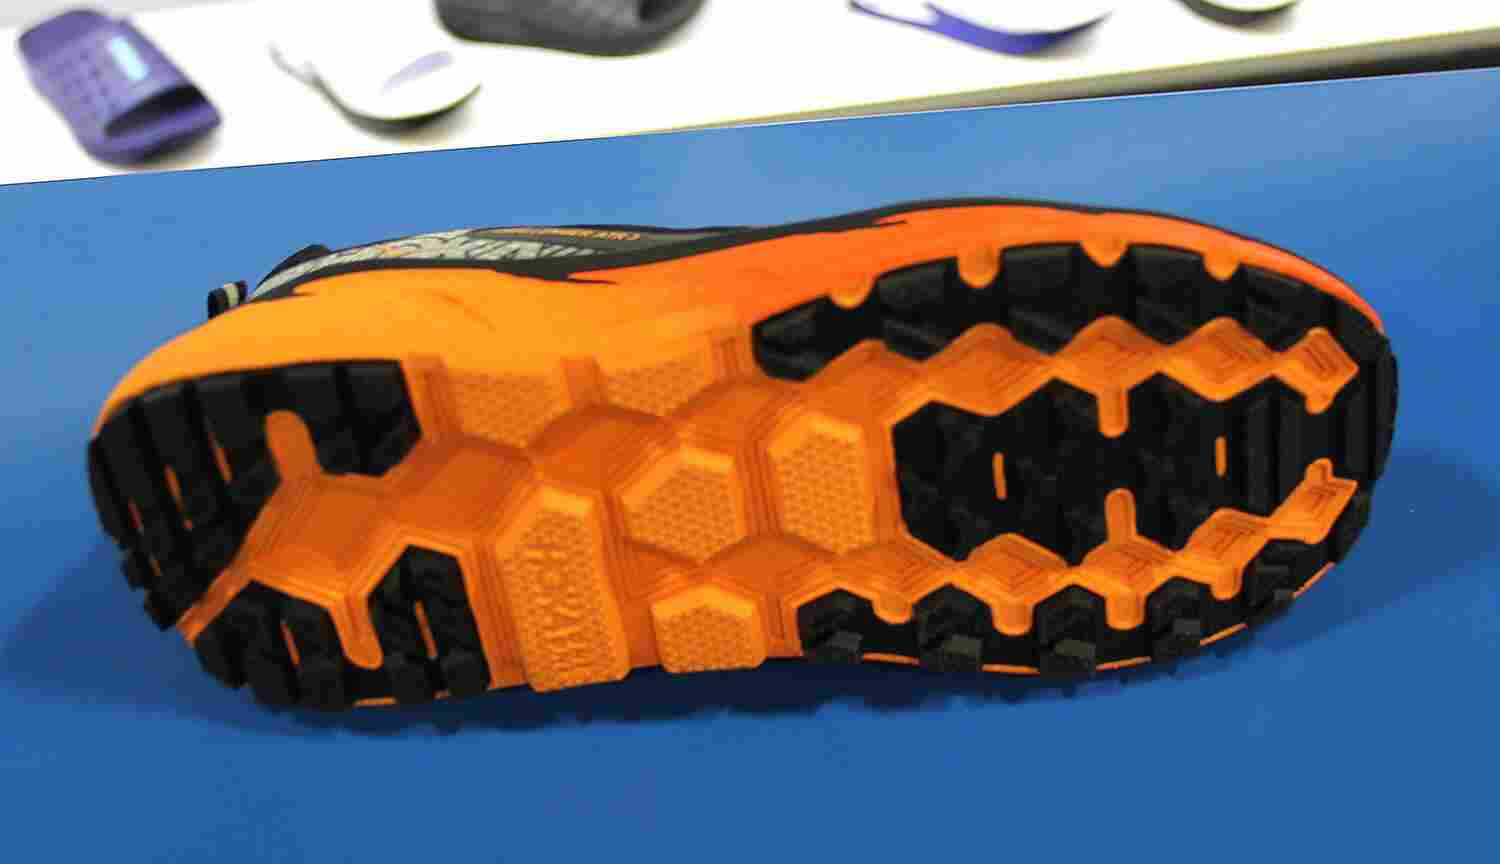 hoka-one-one-challenger-atr-3-bottom-product-showcase